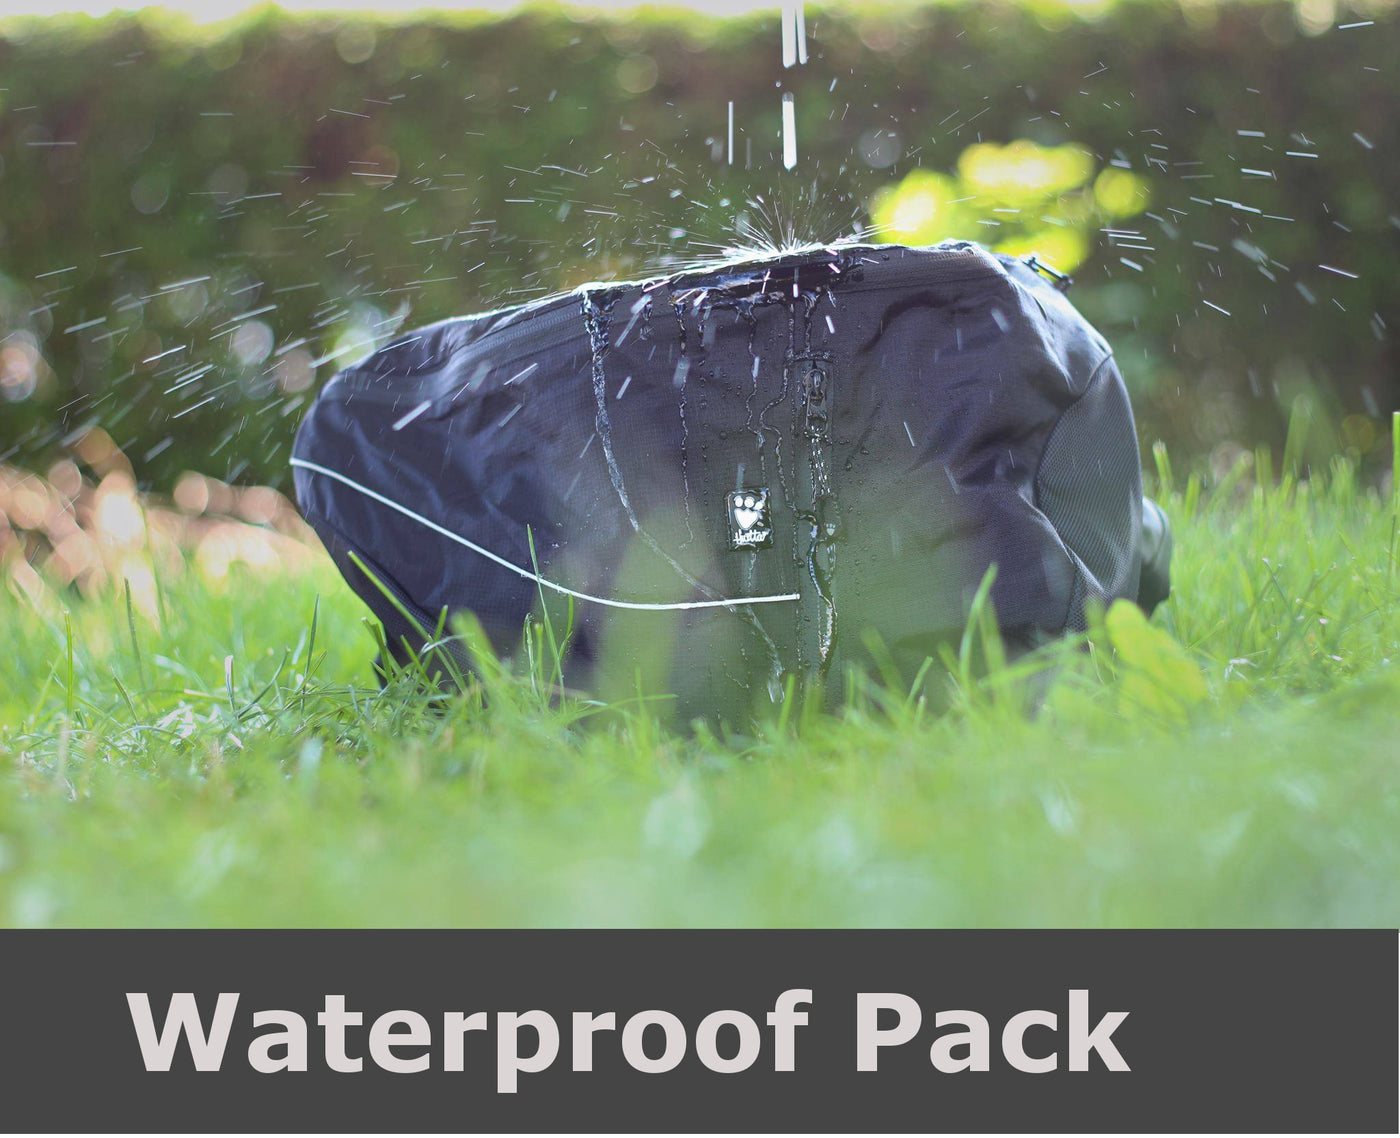 100% waterproof dog pack by Hurtta